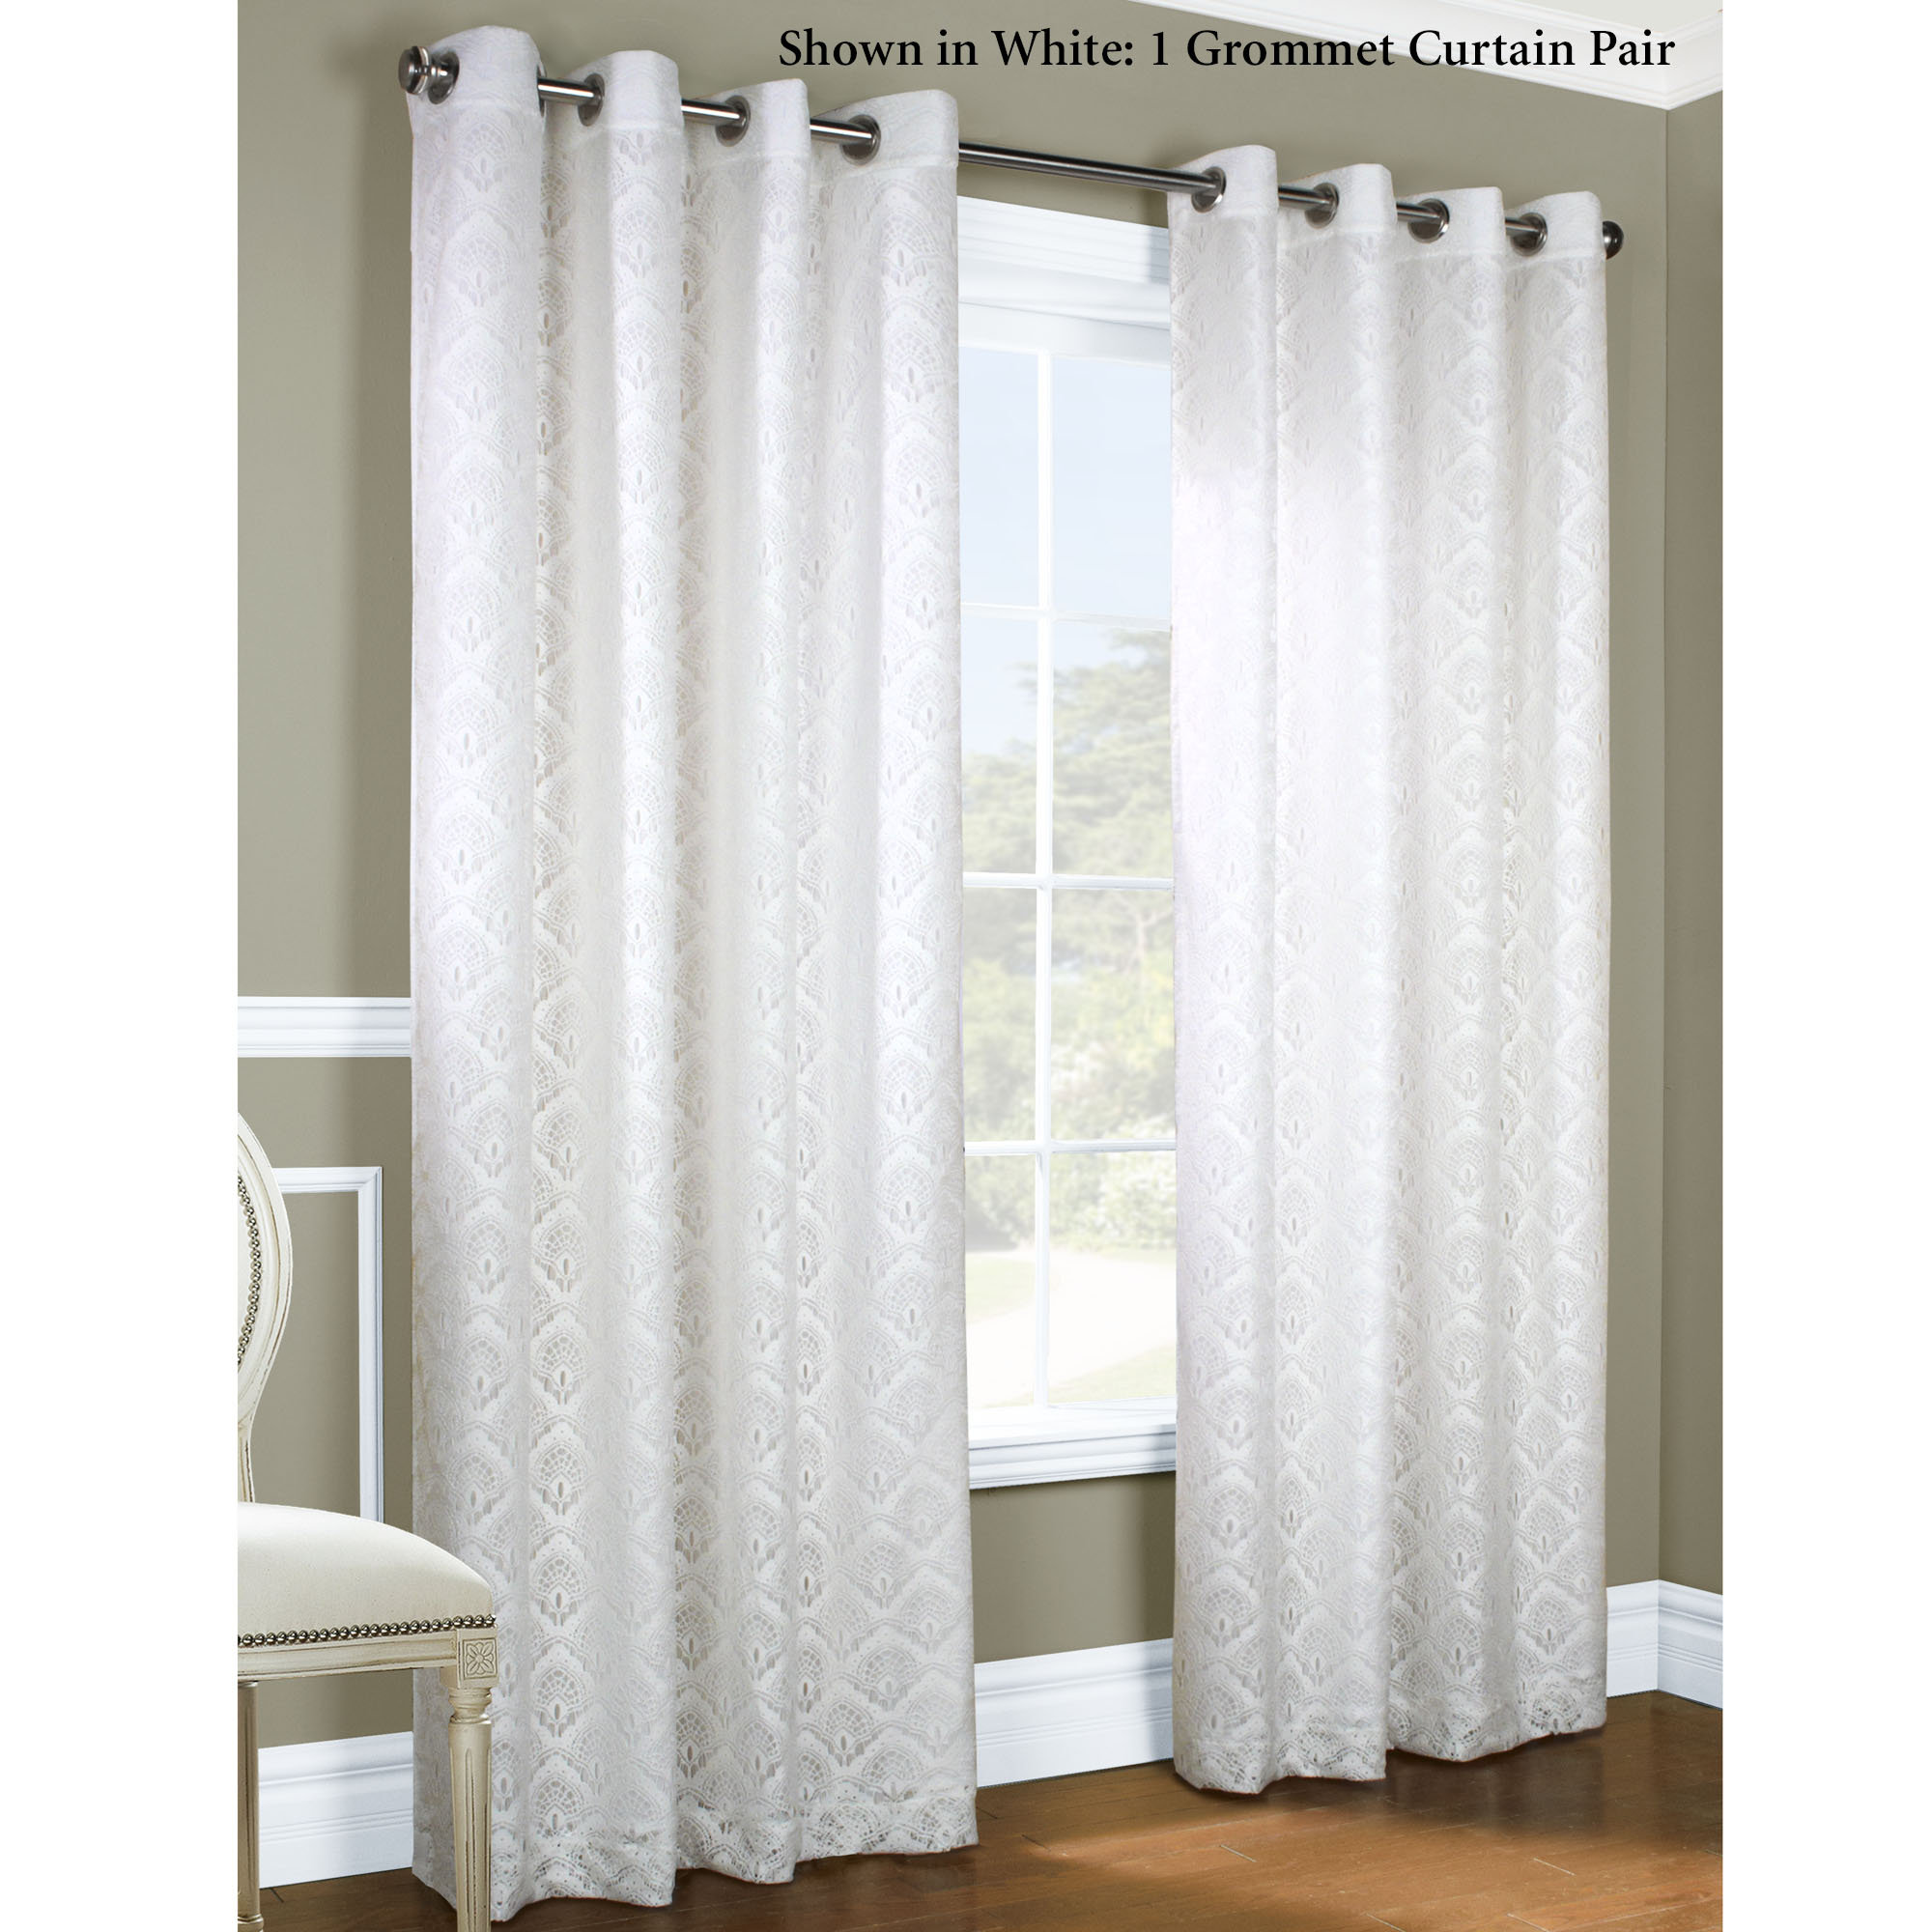 Cheap Blackout Curtains for Inspiring Home Decorating Ideas: Cheap Blackout Curtains | Short Blackout Curtains | Thermal Blackout Drapes